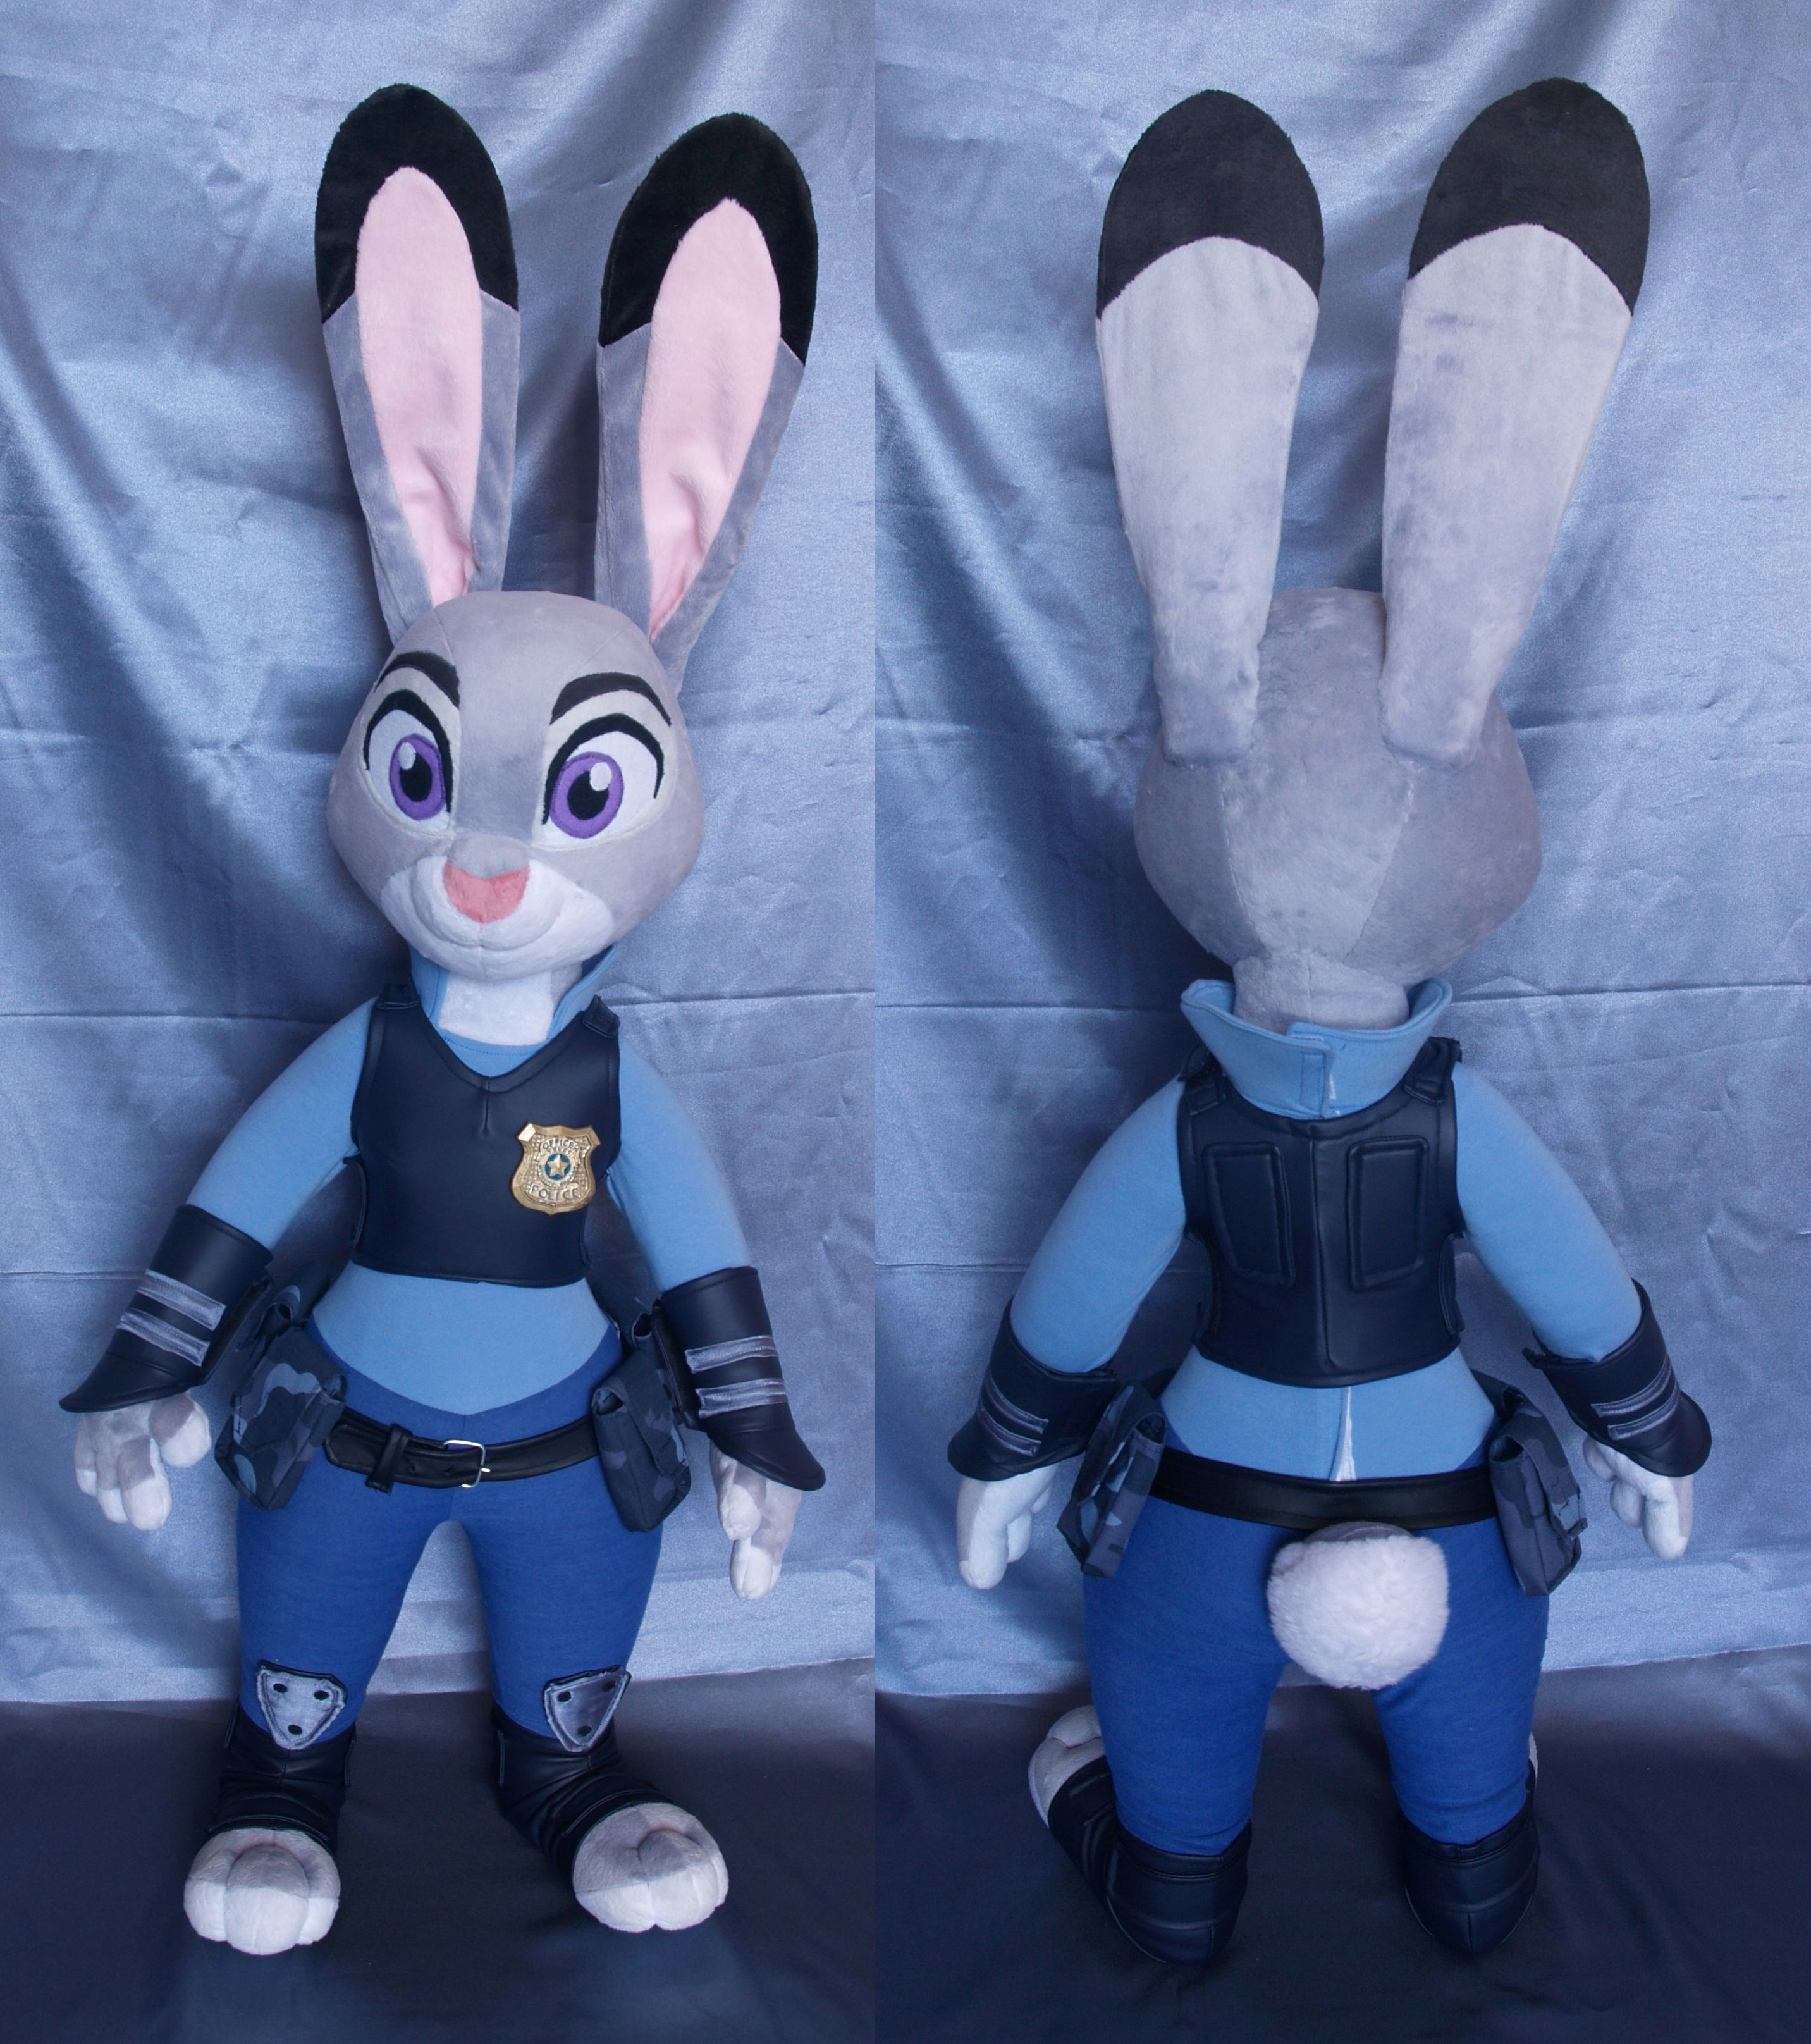 judy_hopps_plushie___police_outfit_by_ad